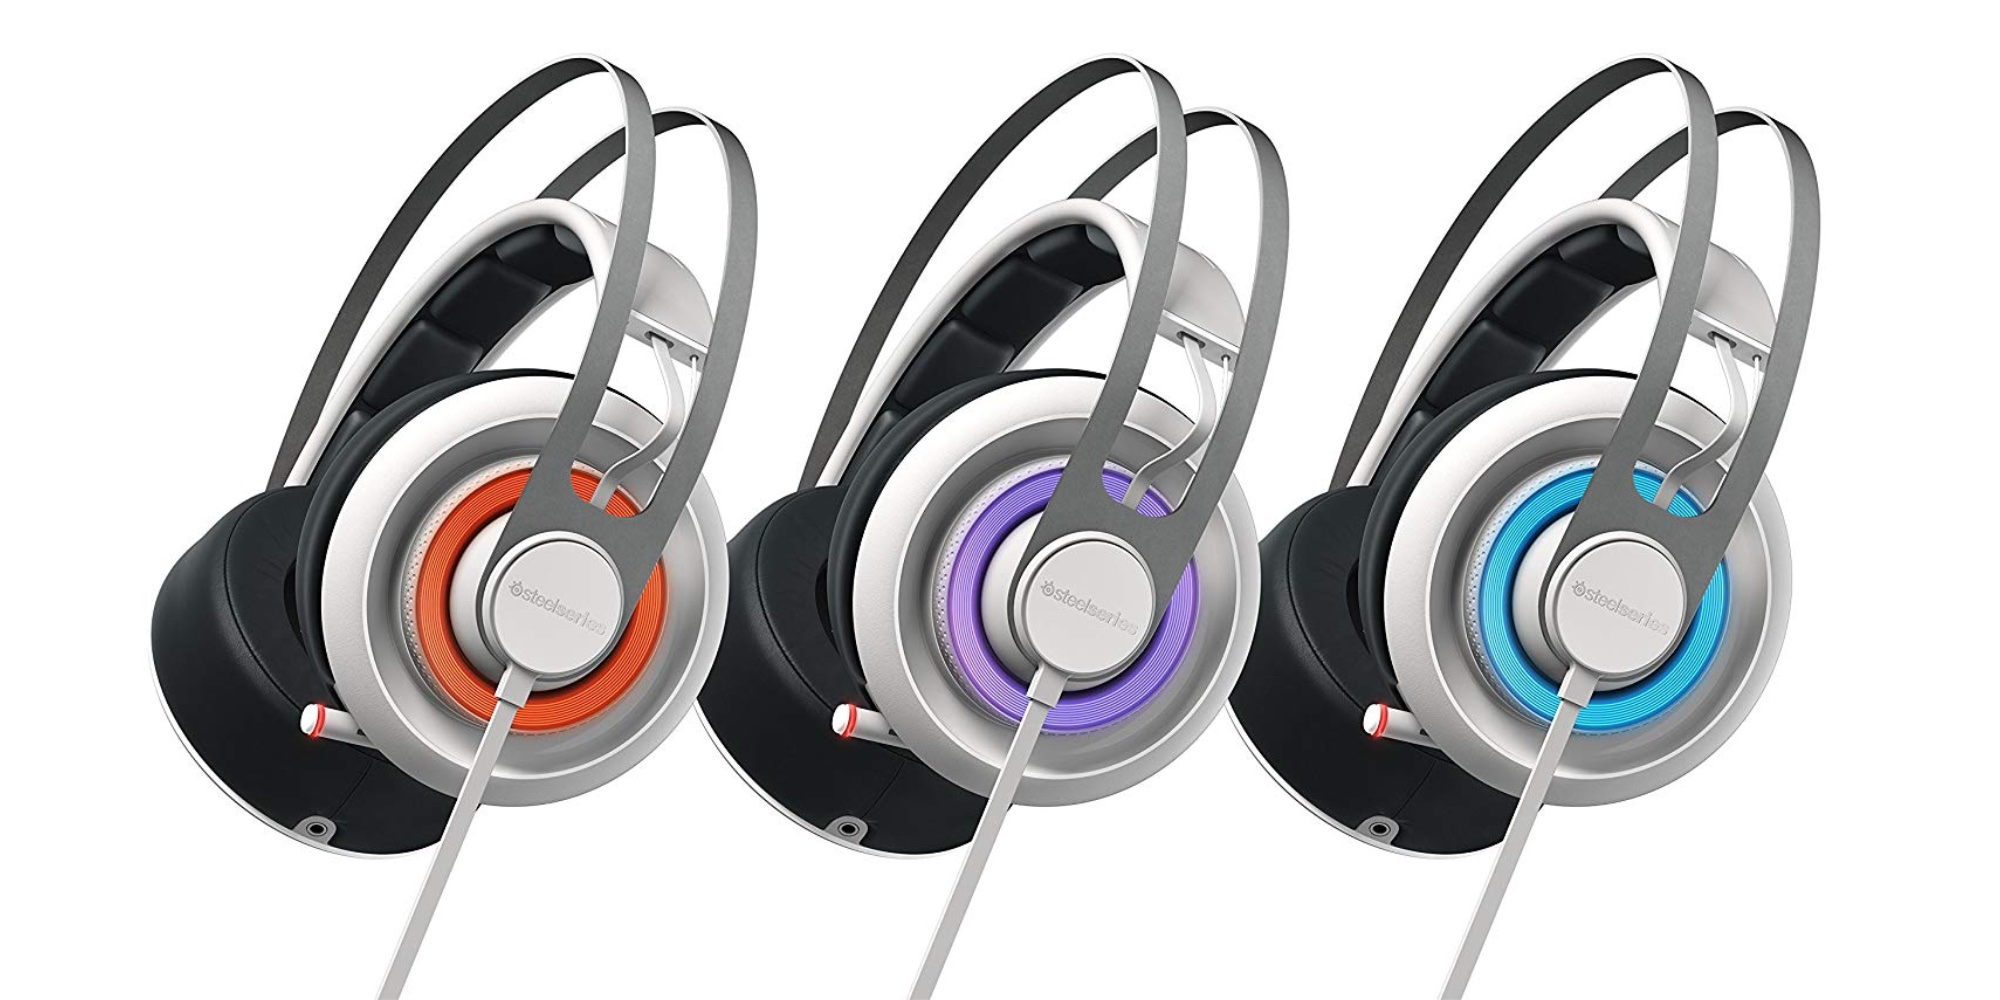 Immersive audio awaits with the SteelSeries Siberia 650 Gaming Headset at $89 (Amazon low, 30% off)